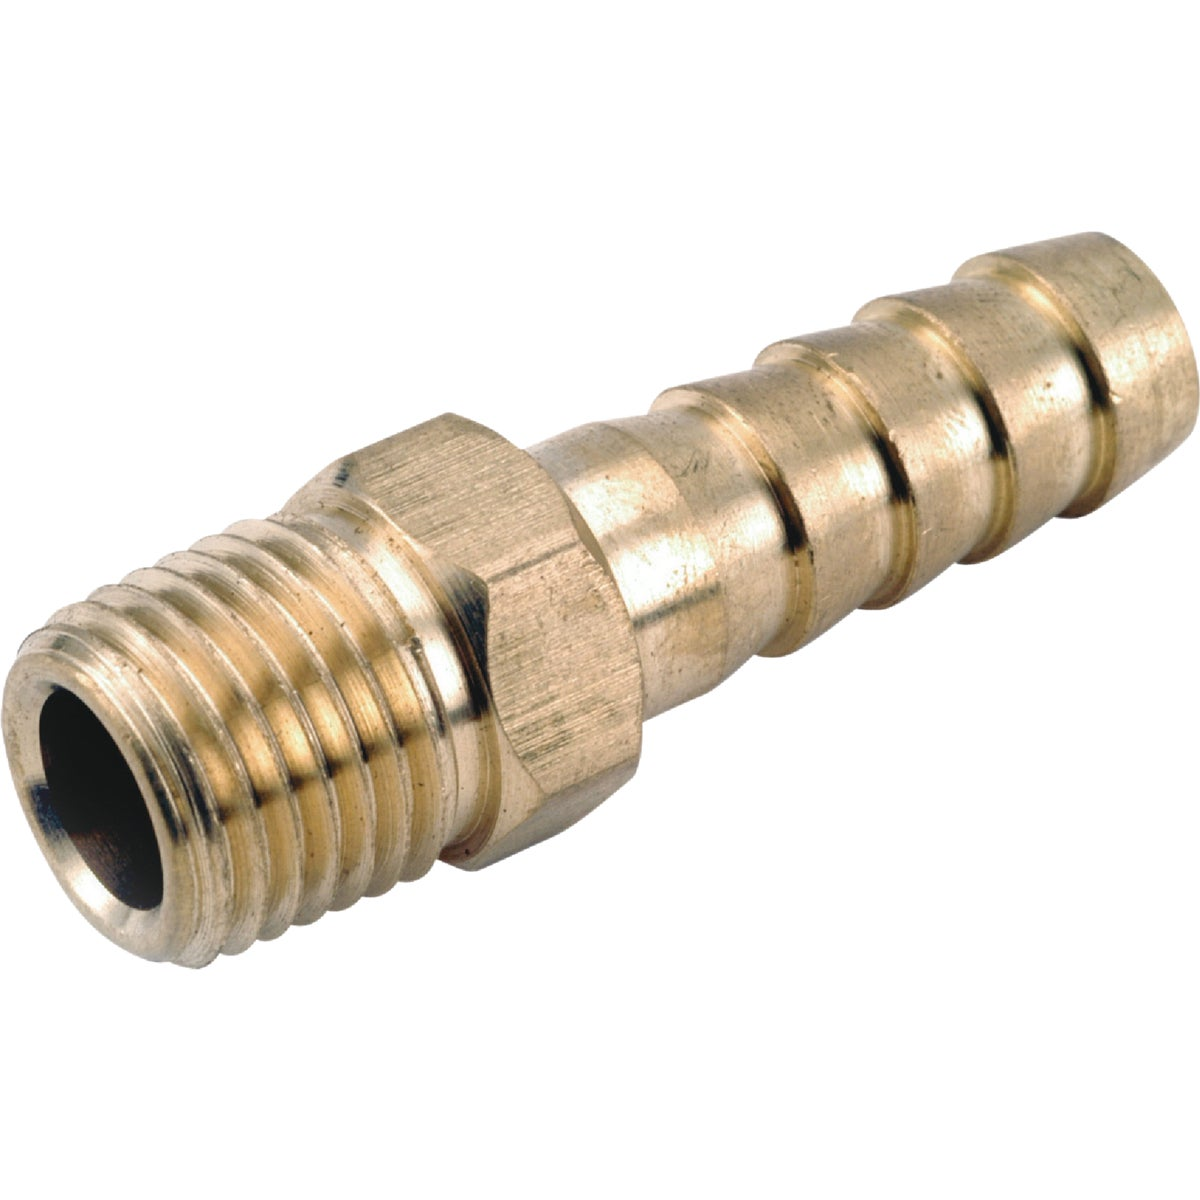 1/8IDX1/8MPT HOSE BARB - 757001-0202 by Anderson Metals Corp